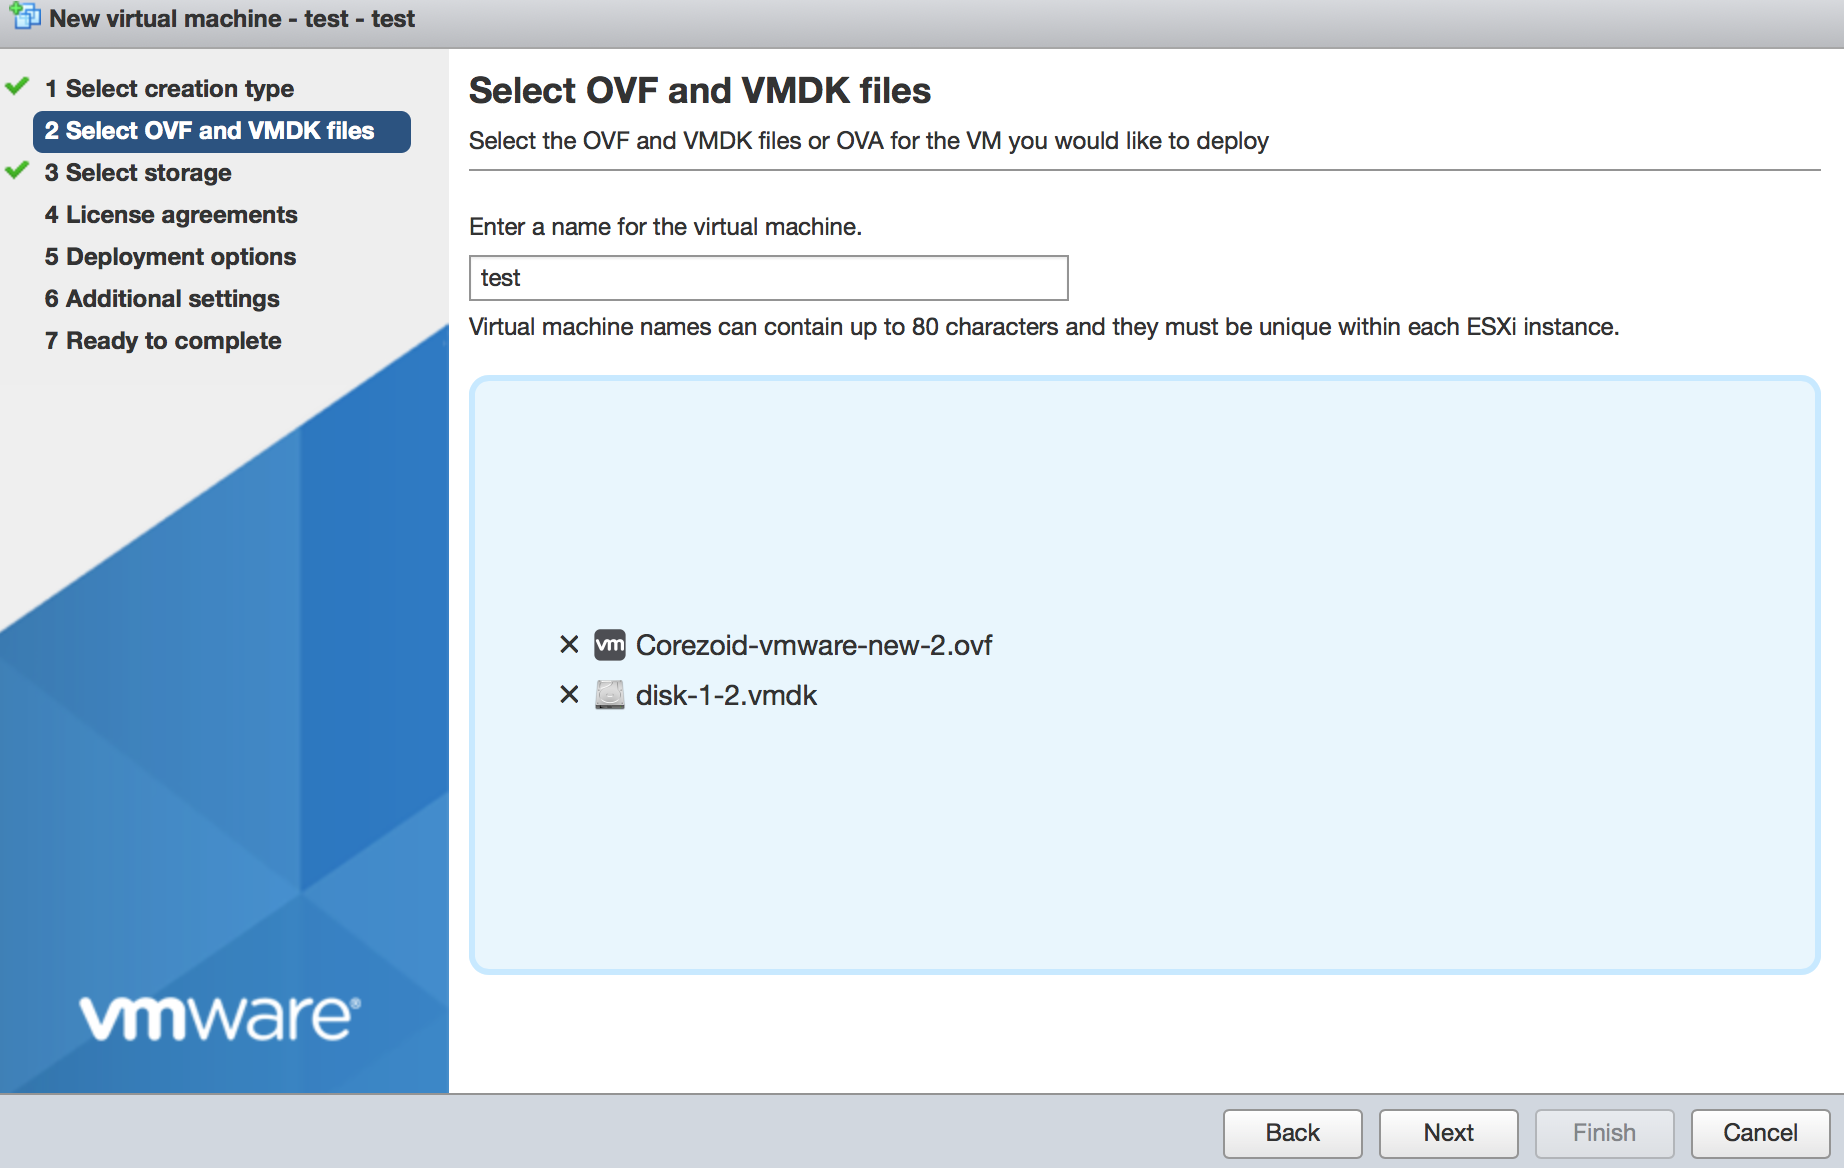 Select OVF and VMDK files